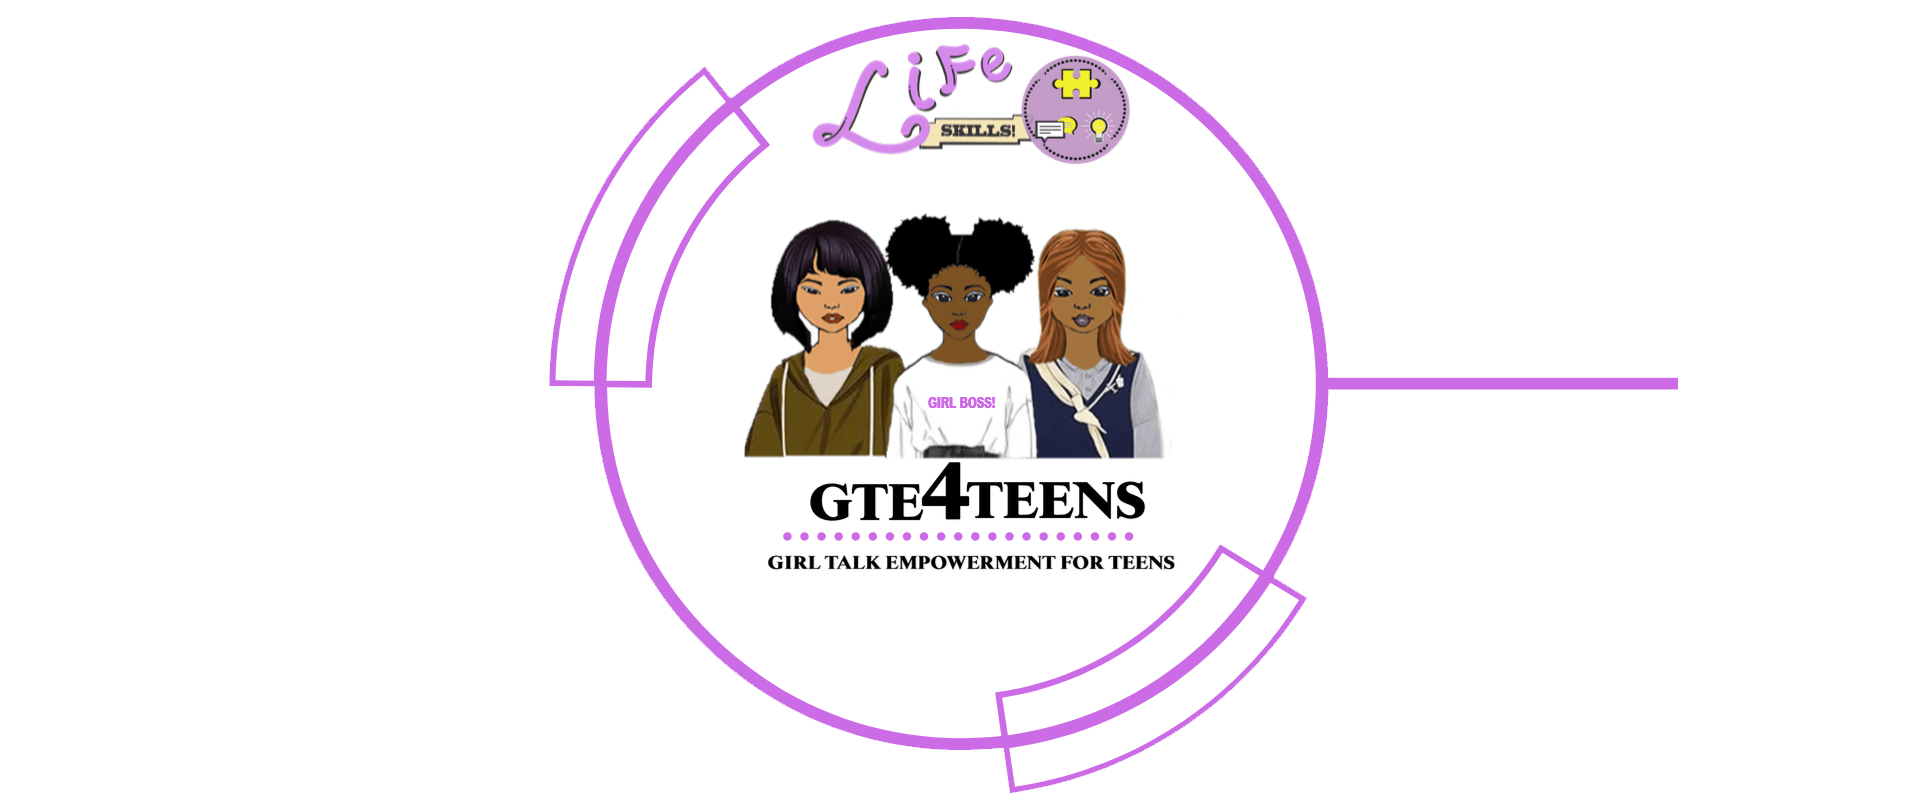 GIRL TALK EMPOWERMENT (GTE) 4 TEENS